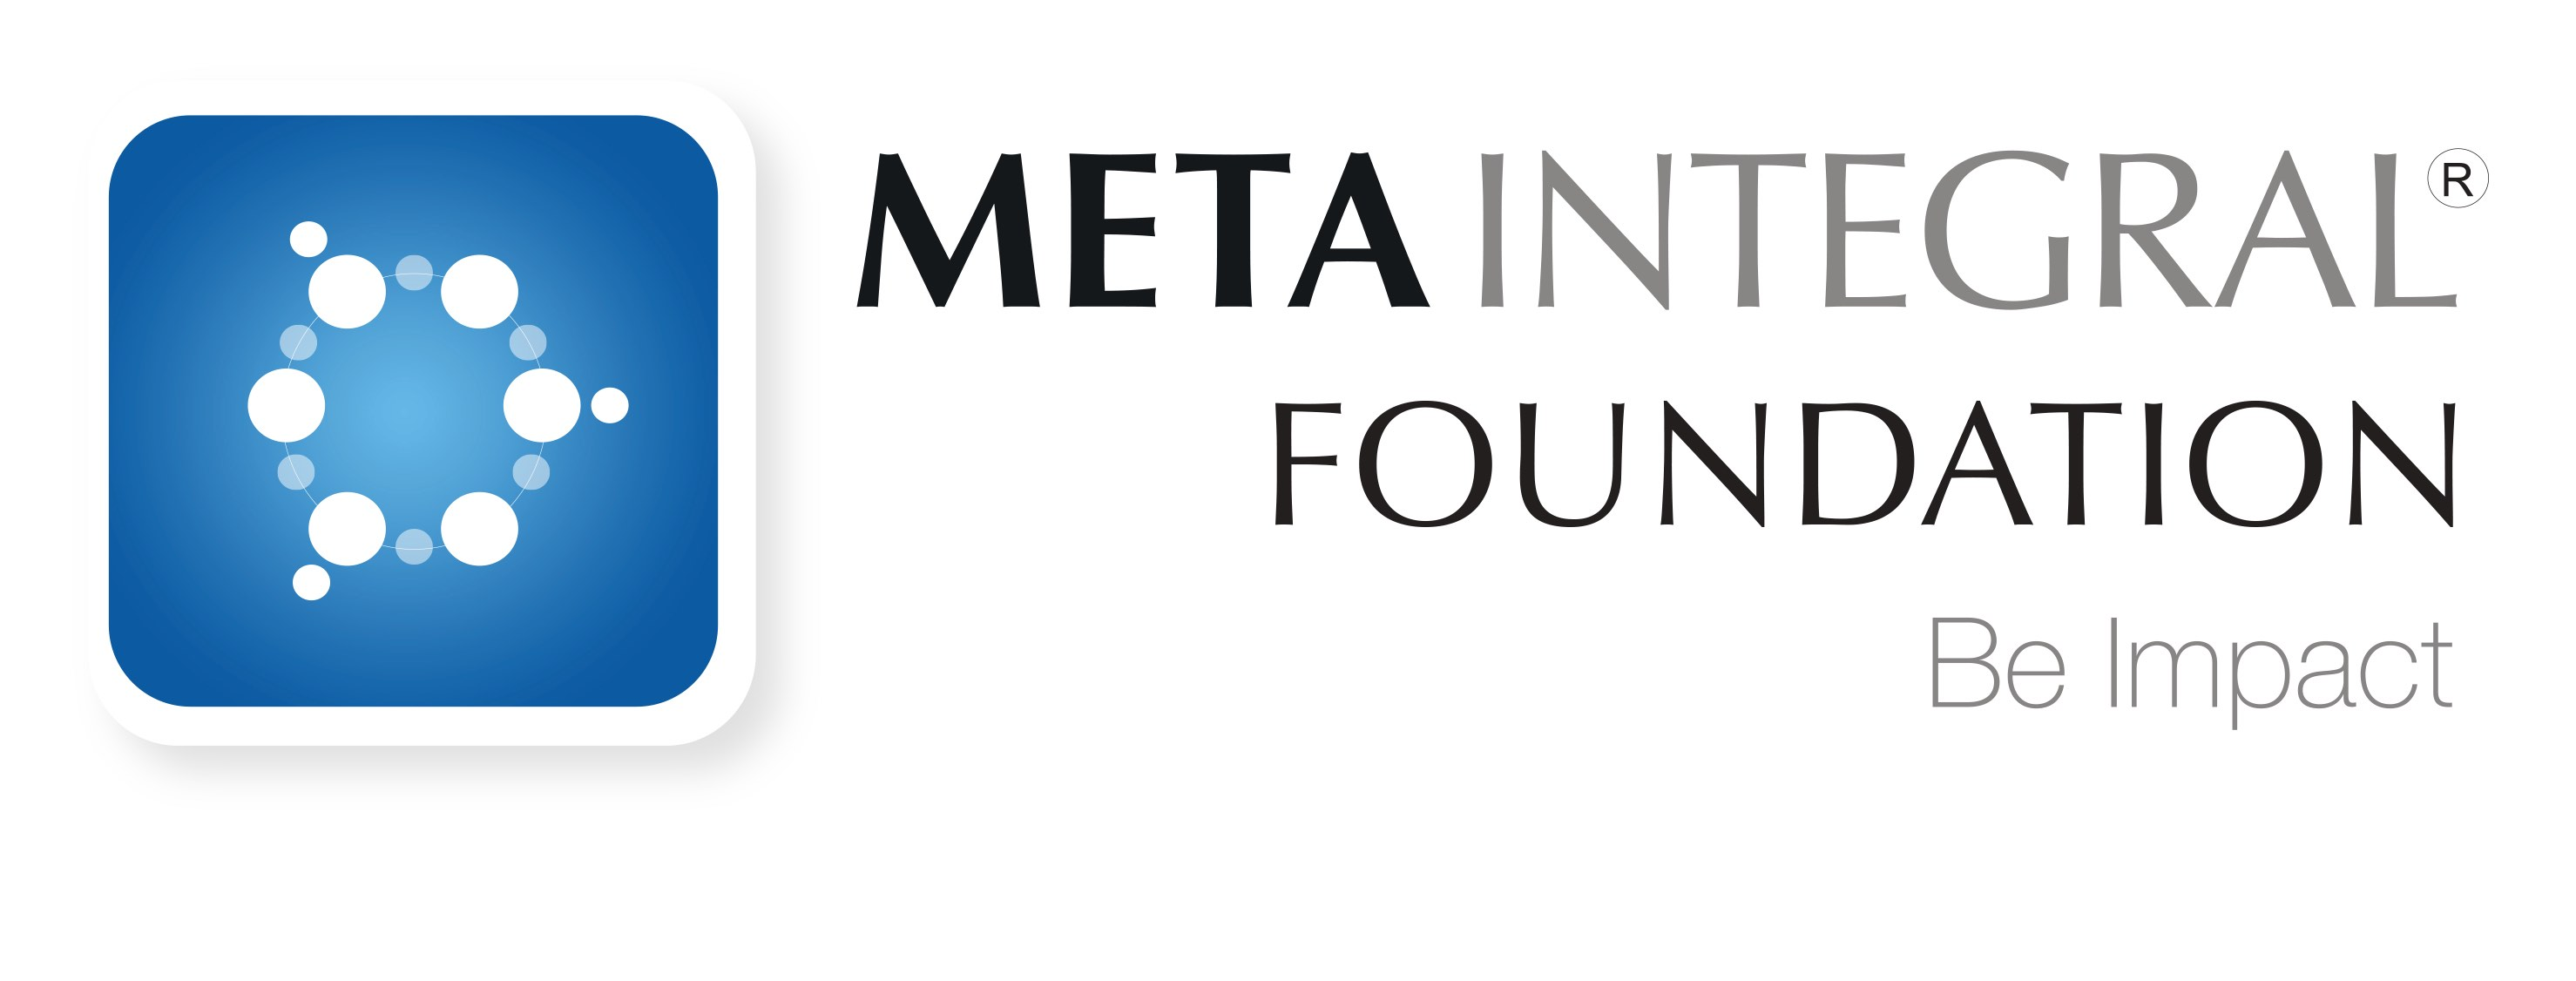 metaintegral logo